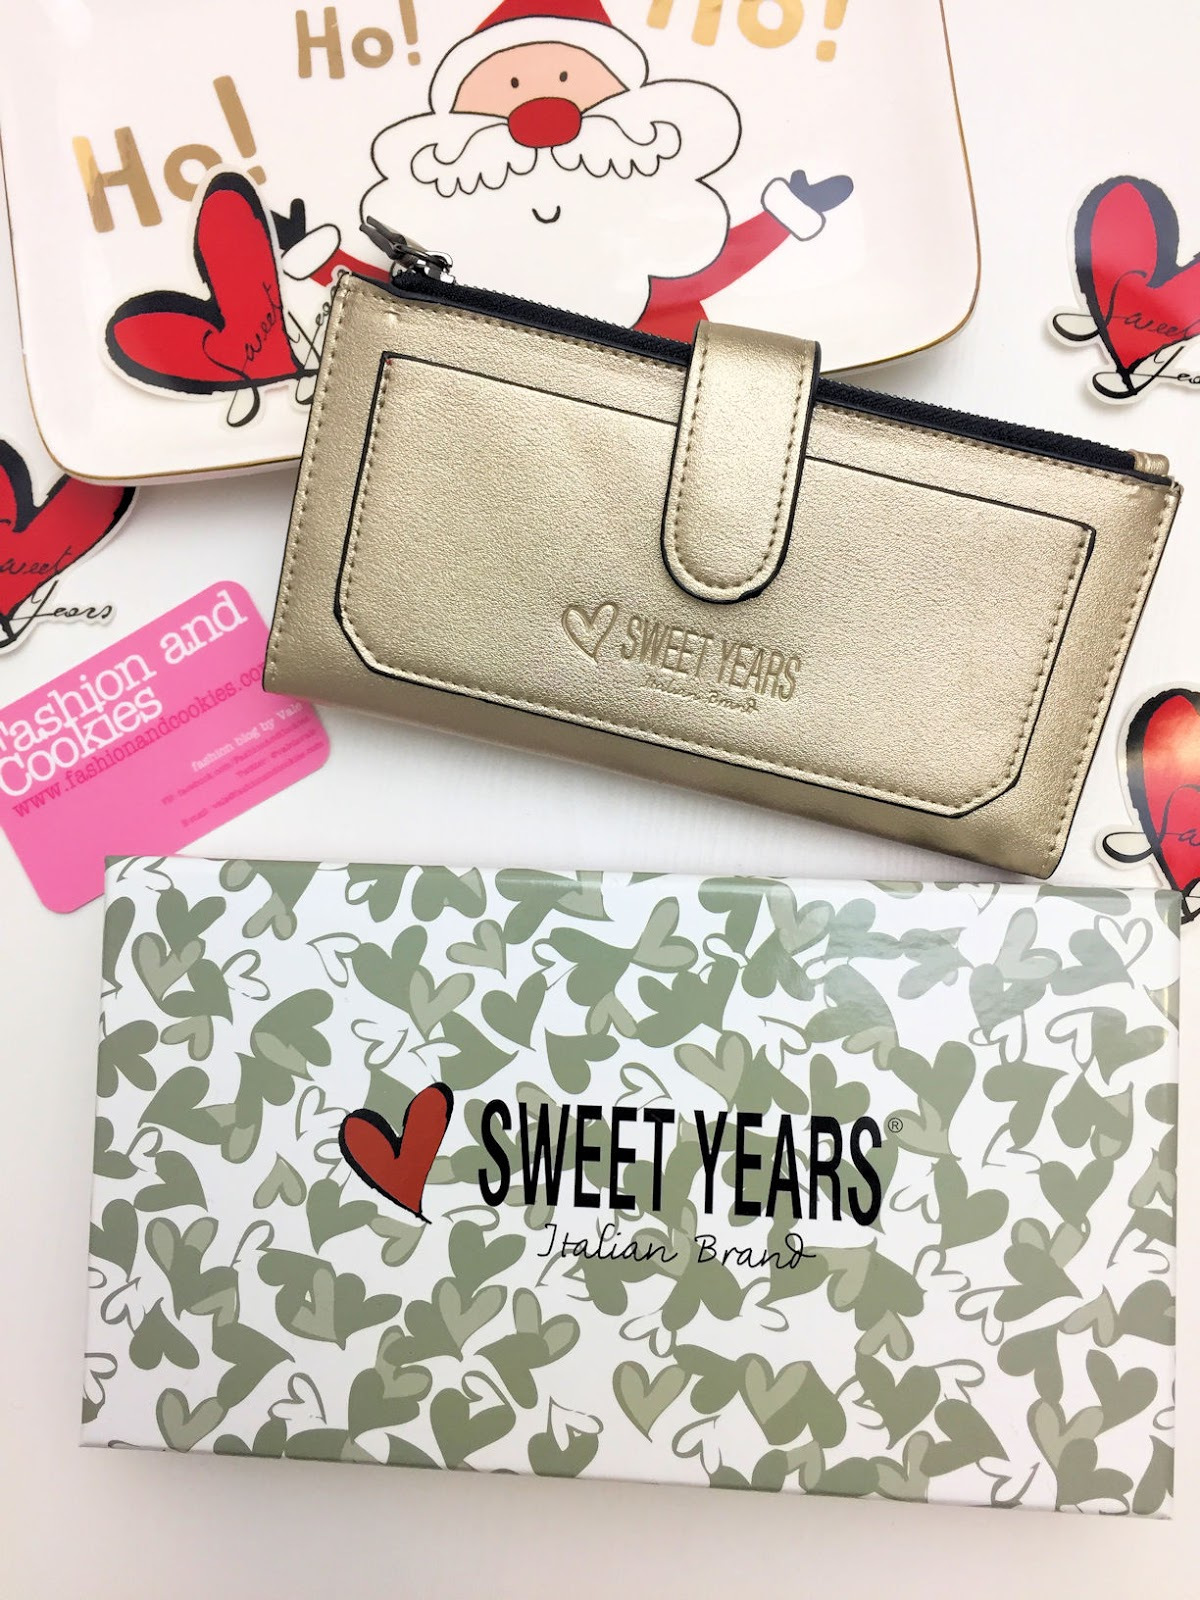 Idee regalo per Natale Sweet Years su Fashion and Cookies fashion and beauty blog